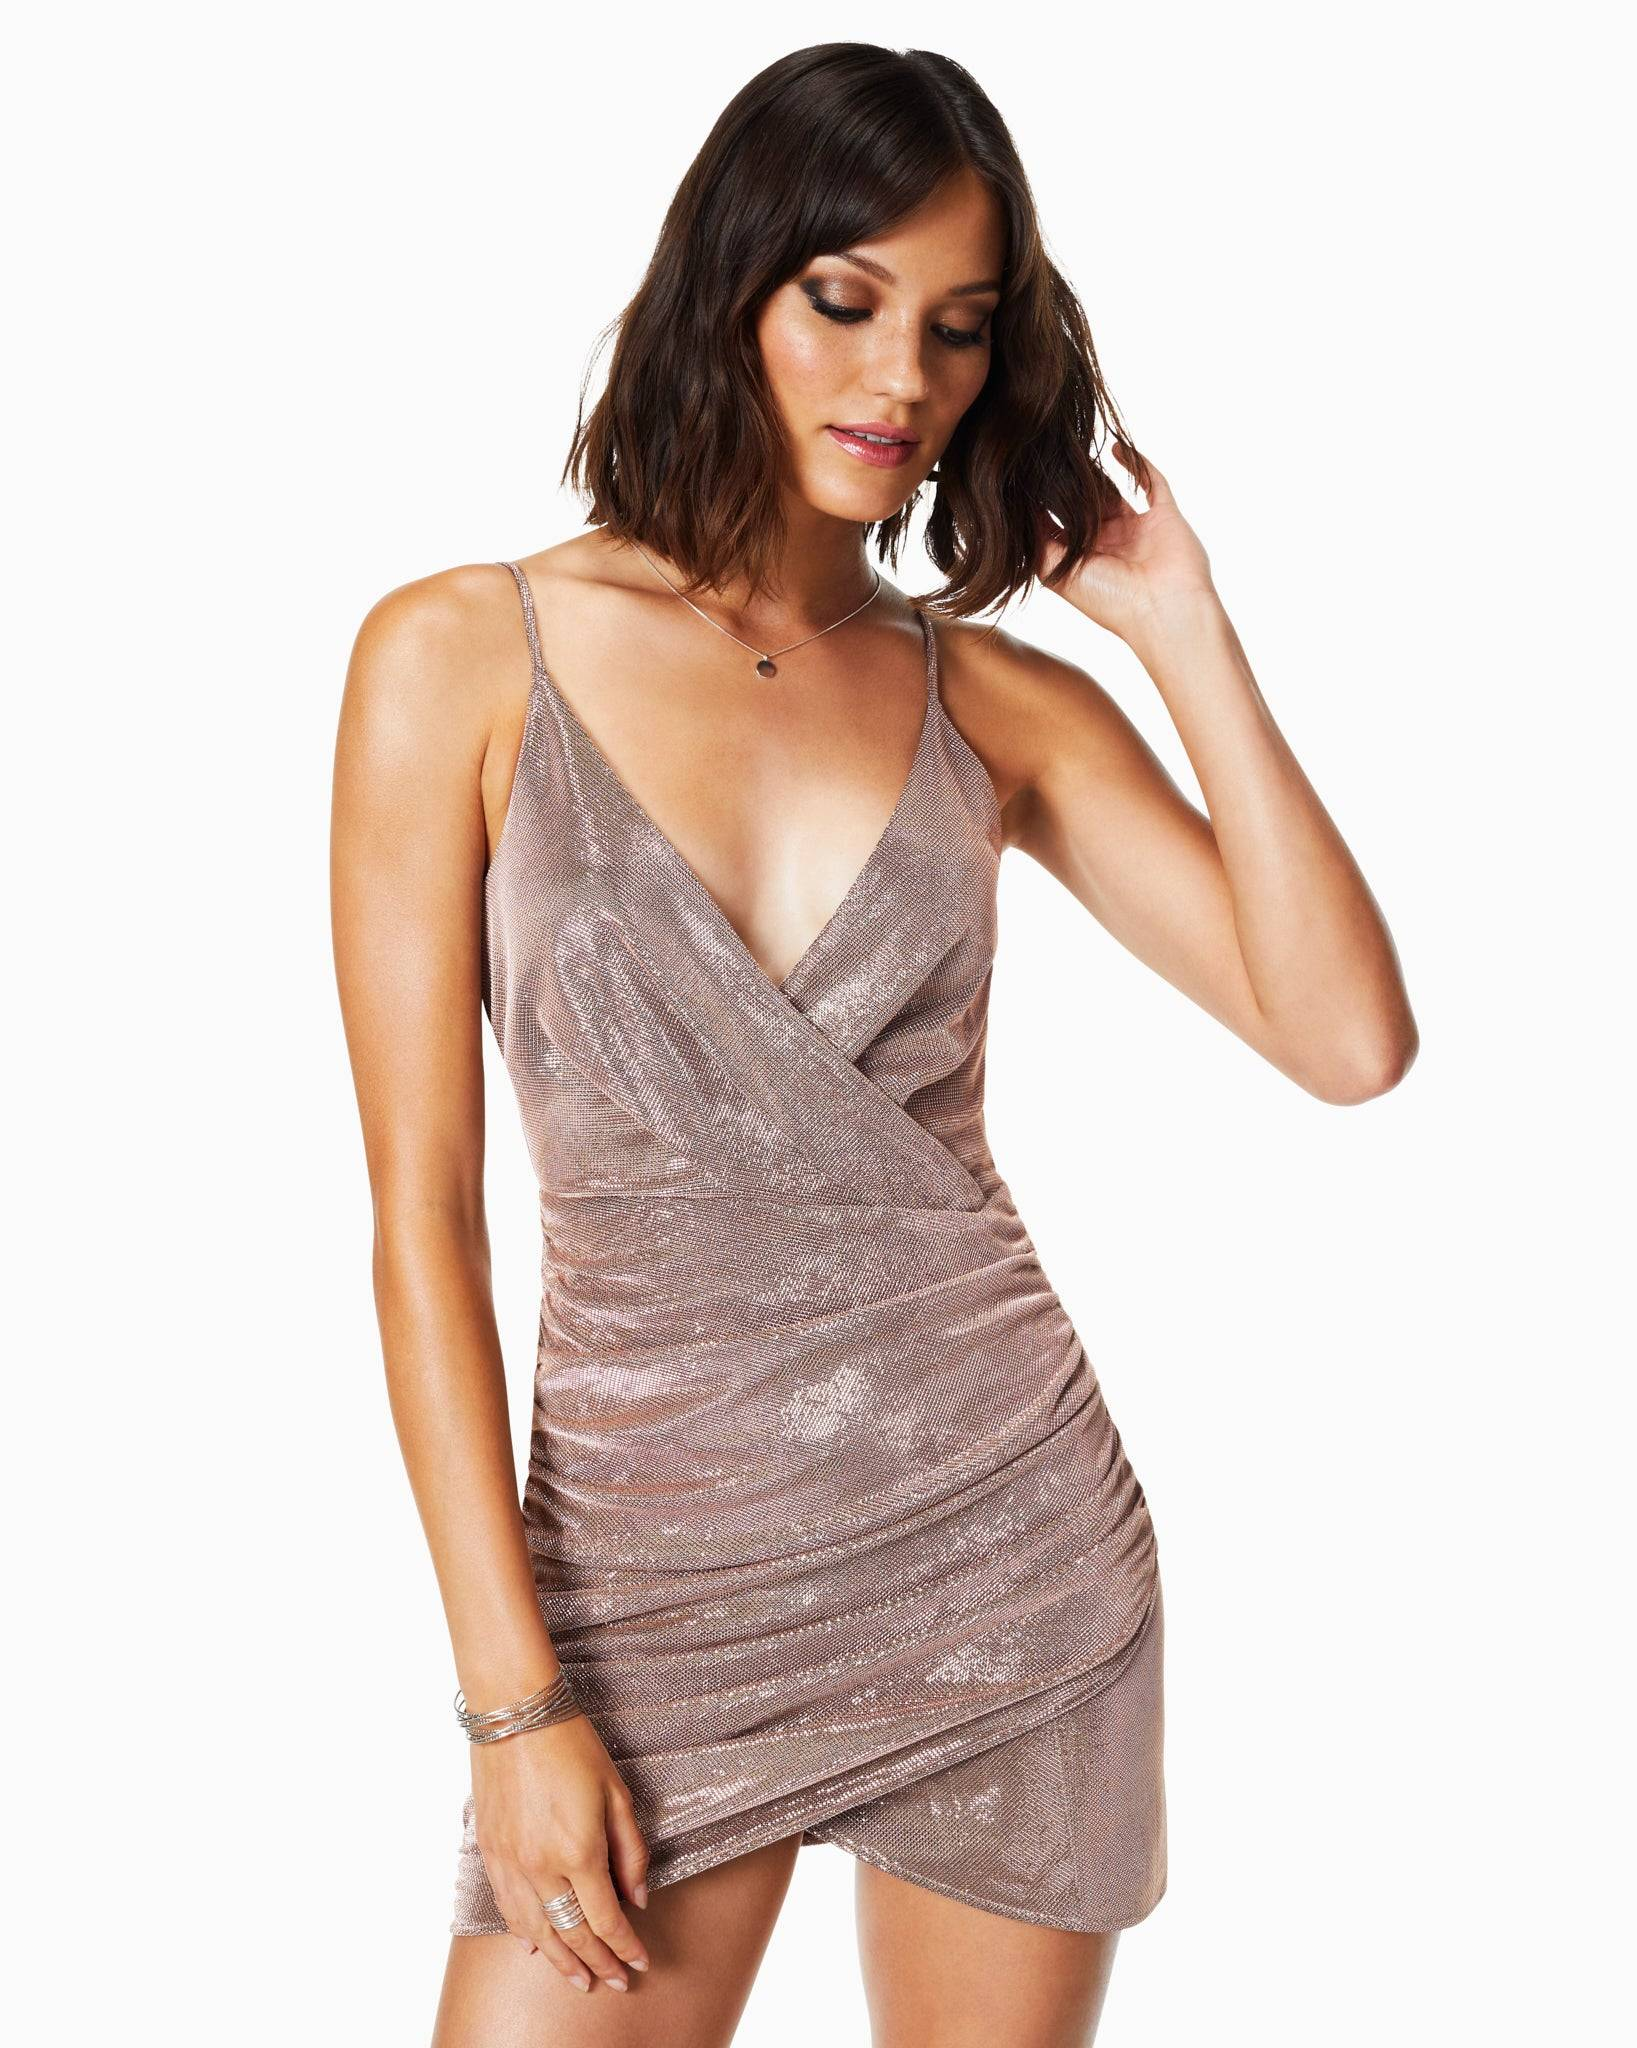 Madilyn Ruched Mini Dress in Holiday Blush - Holiday Blush - Size: 10